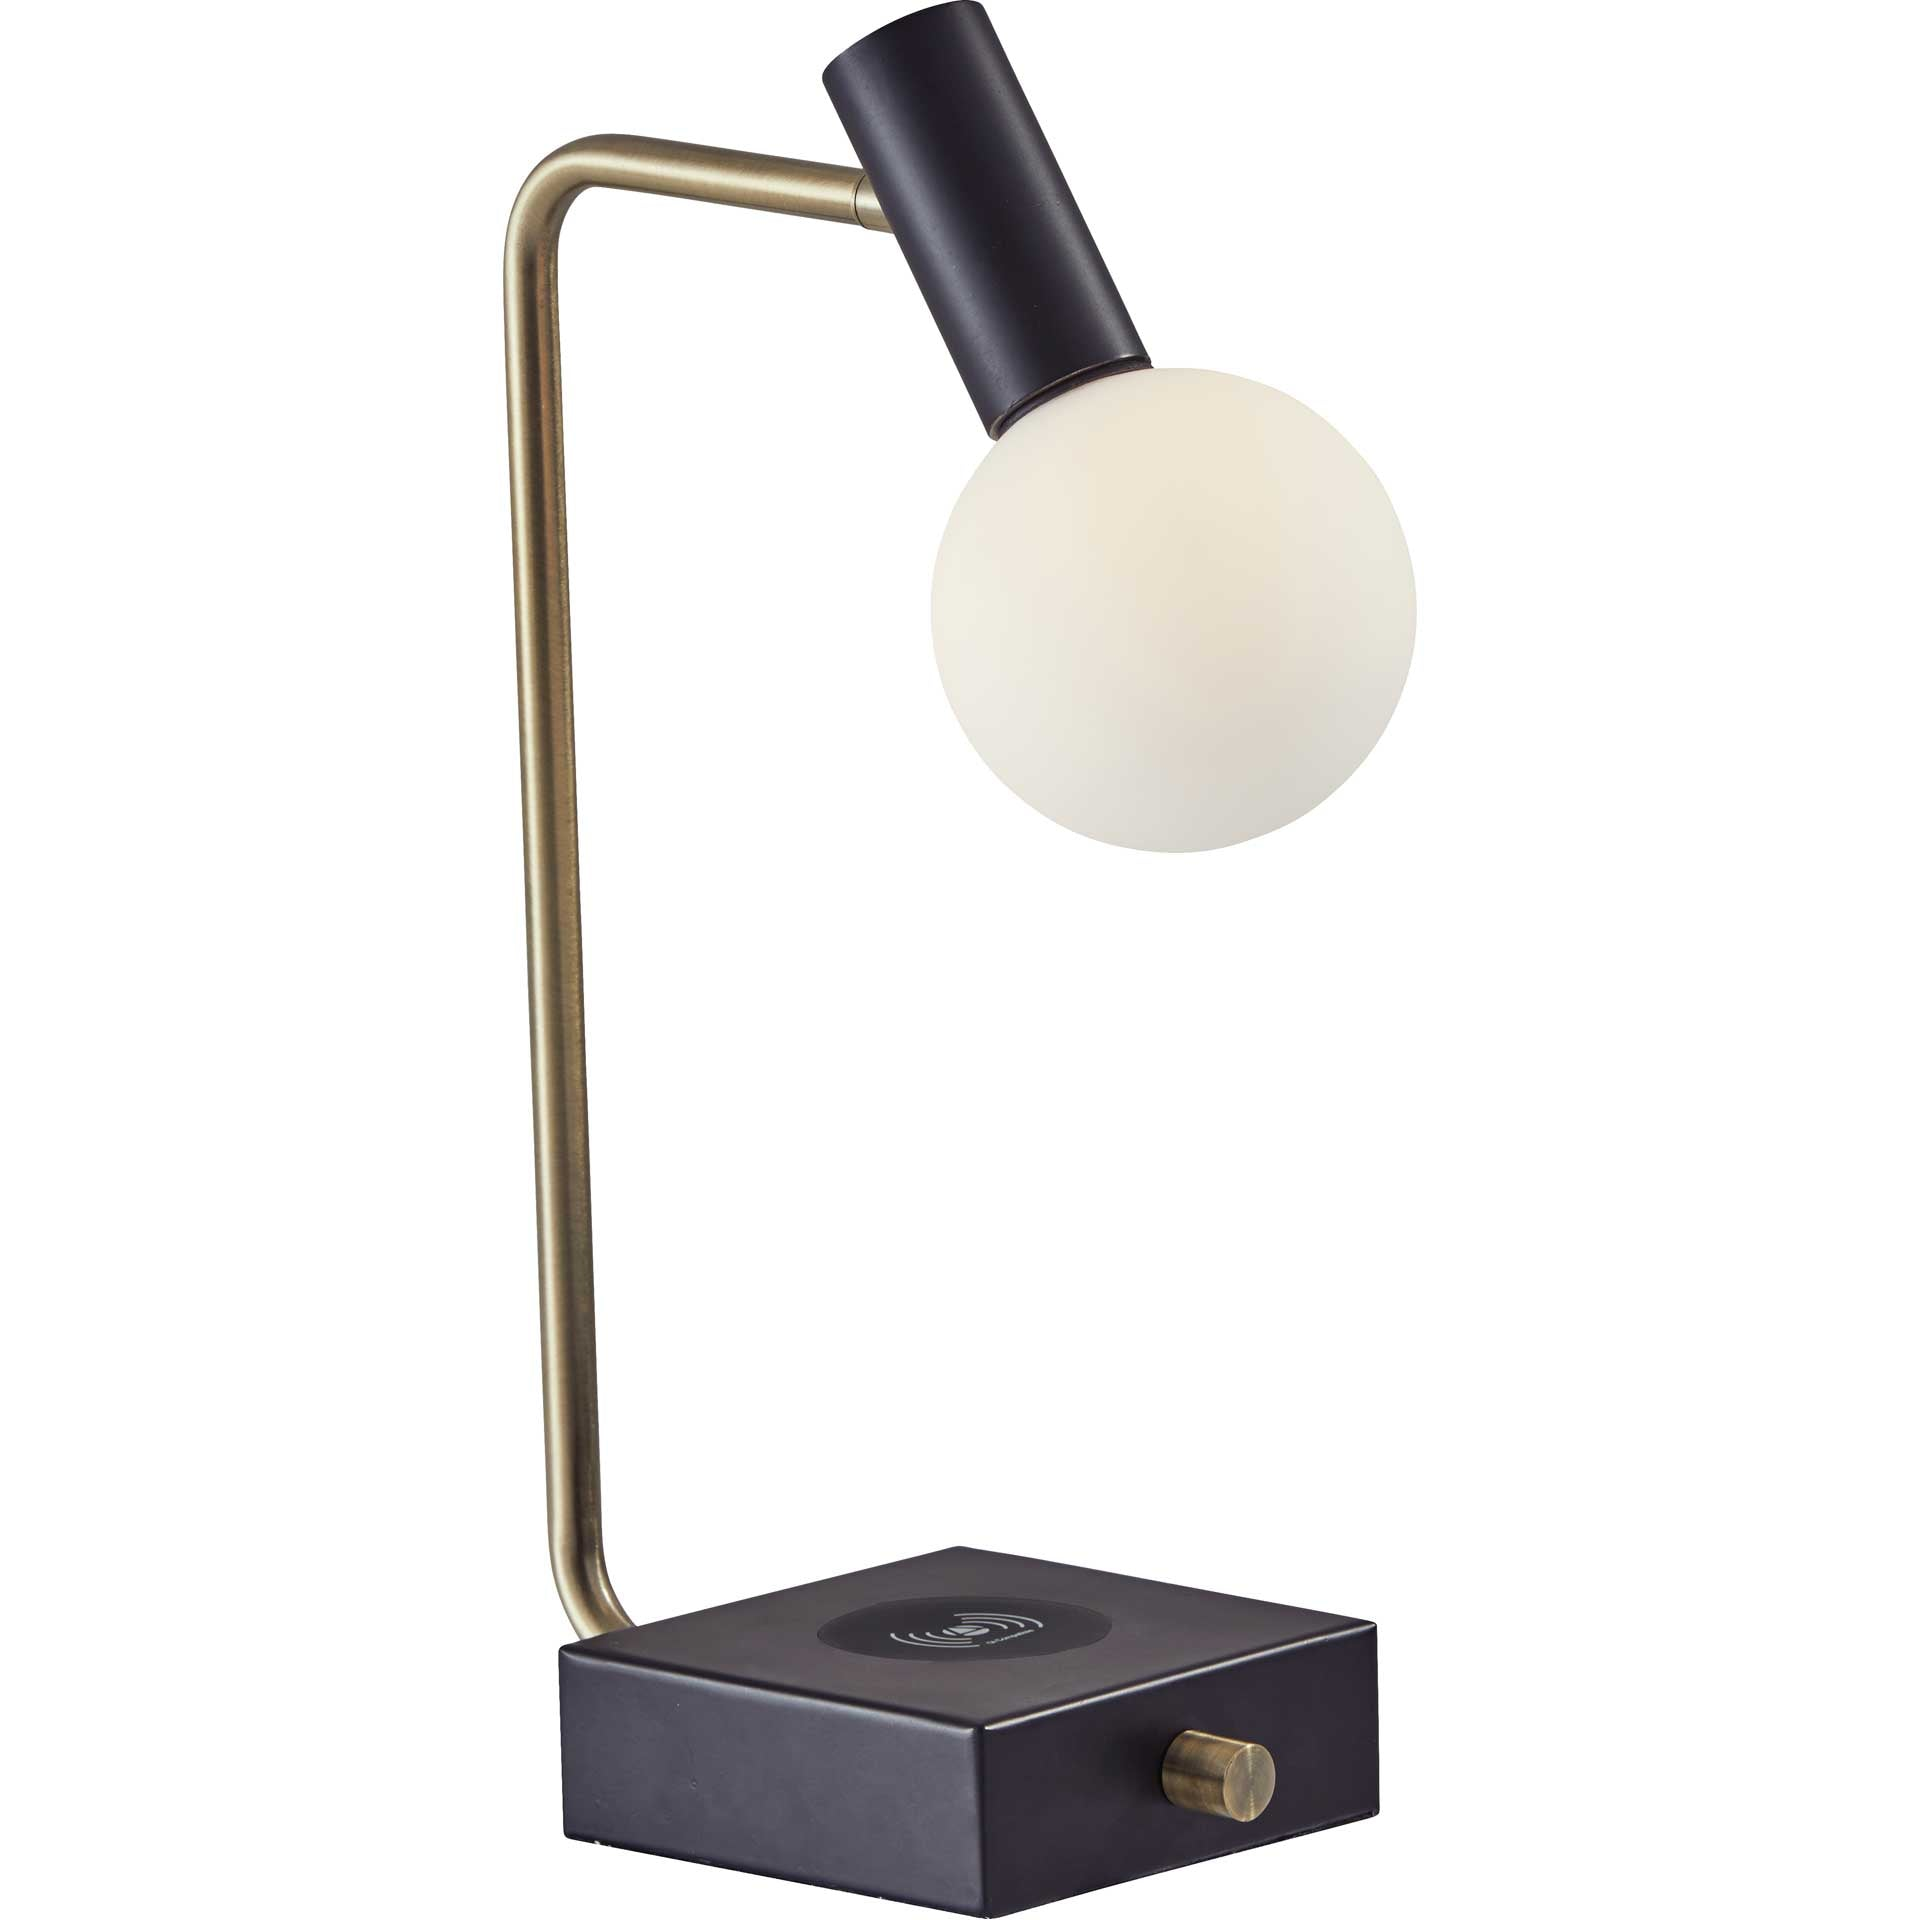 Wiltshire Wireless Charge Desk Lamp Black/Brass